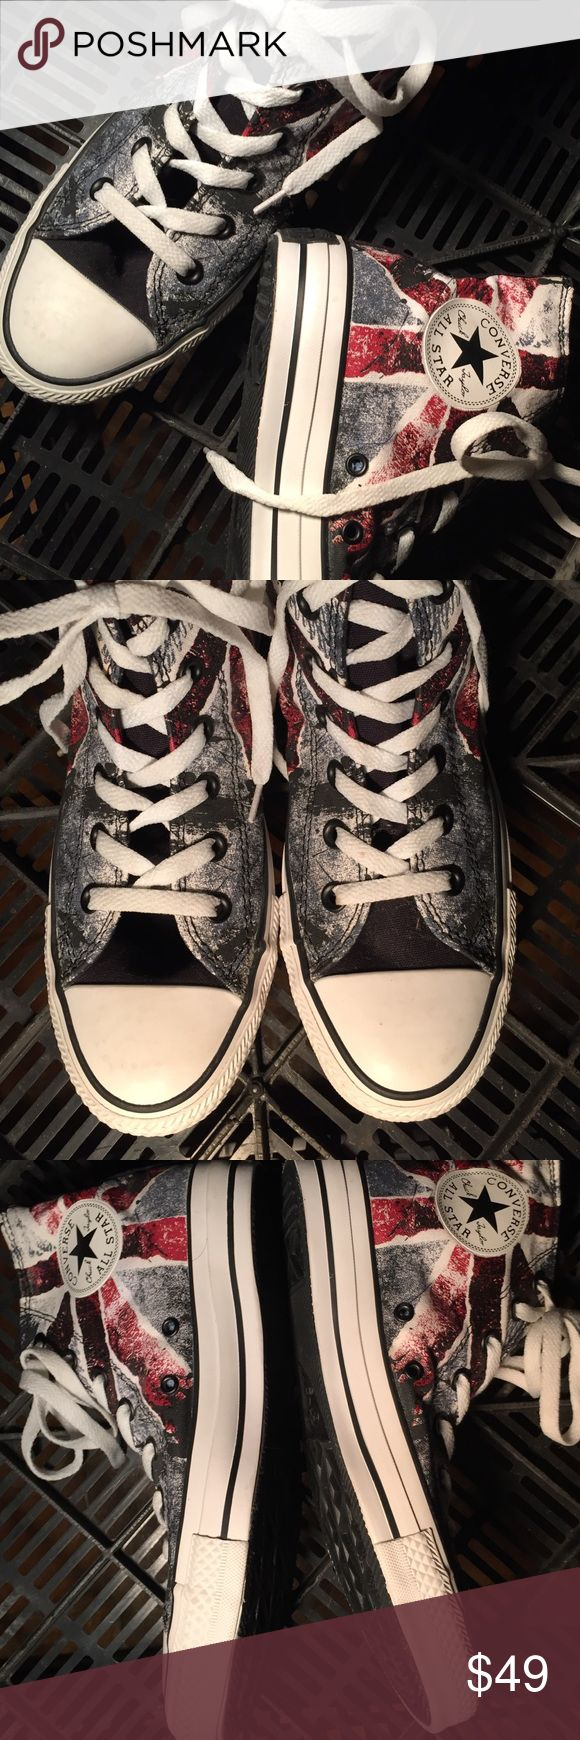 NWOT Chuck Taylor Converse All star high Tops. Super cool. Not sure but looks like a British flag   In black , gray & Red. Brand new. Never worn. Perfect condition. Very unique design. Totally hip!! Chuck Taylor Converse All Stars Shoes Sneakers